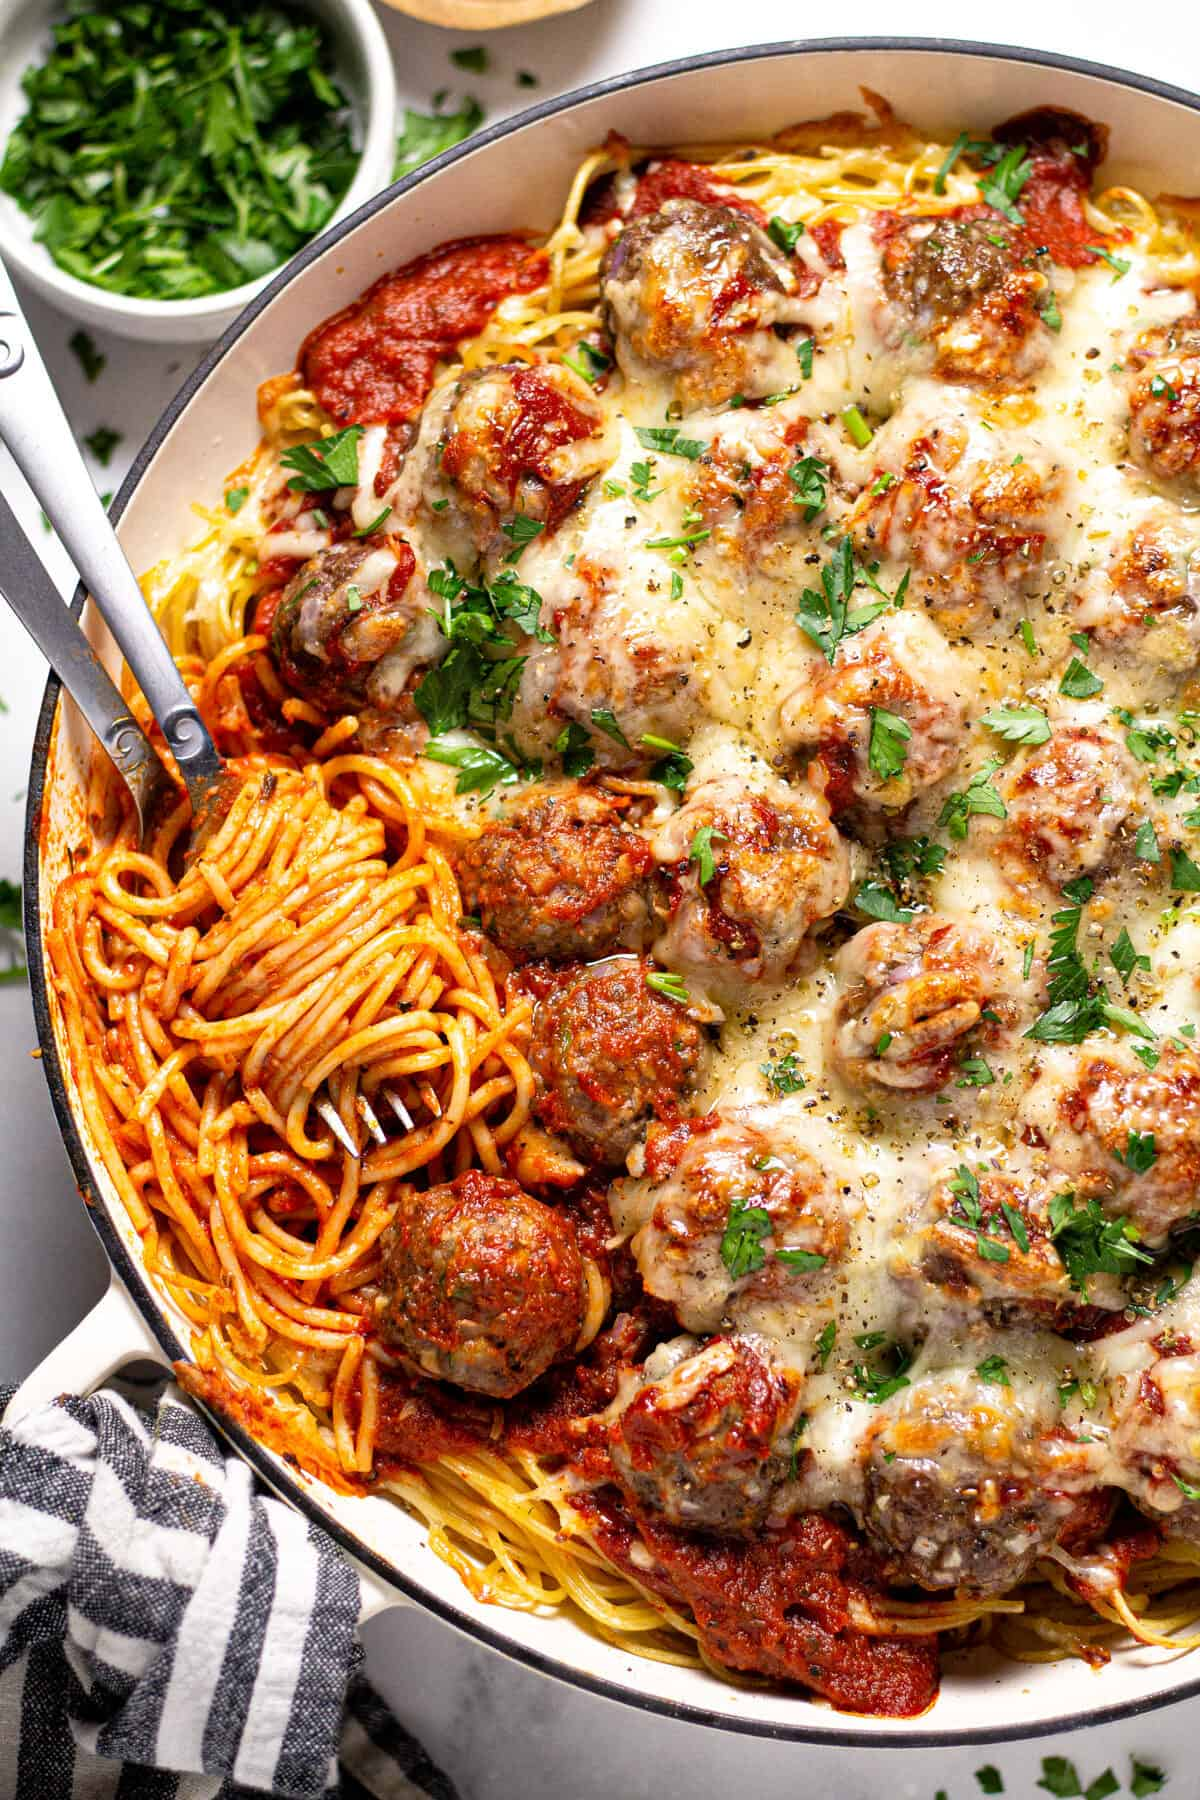 Overhead shot of a pan filled with baked spaghetti and meatballs garnished with fresh parsley